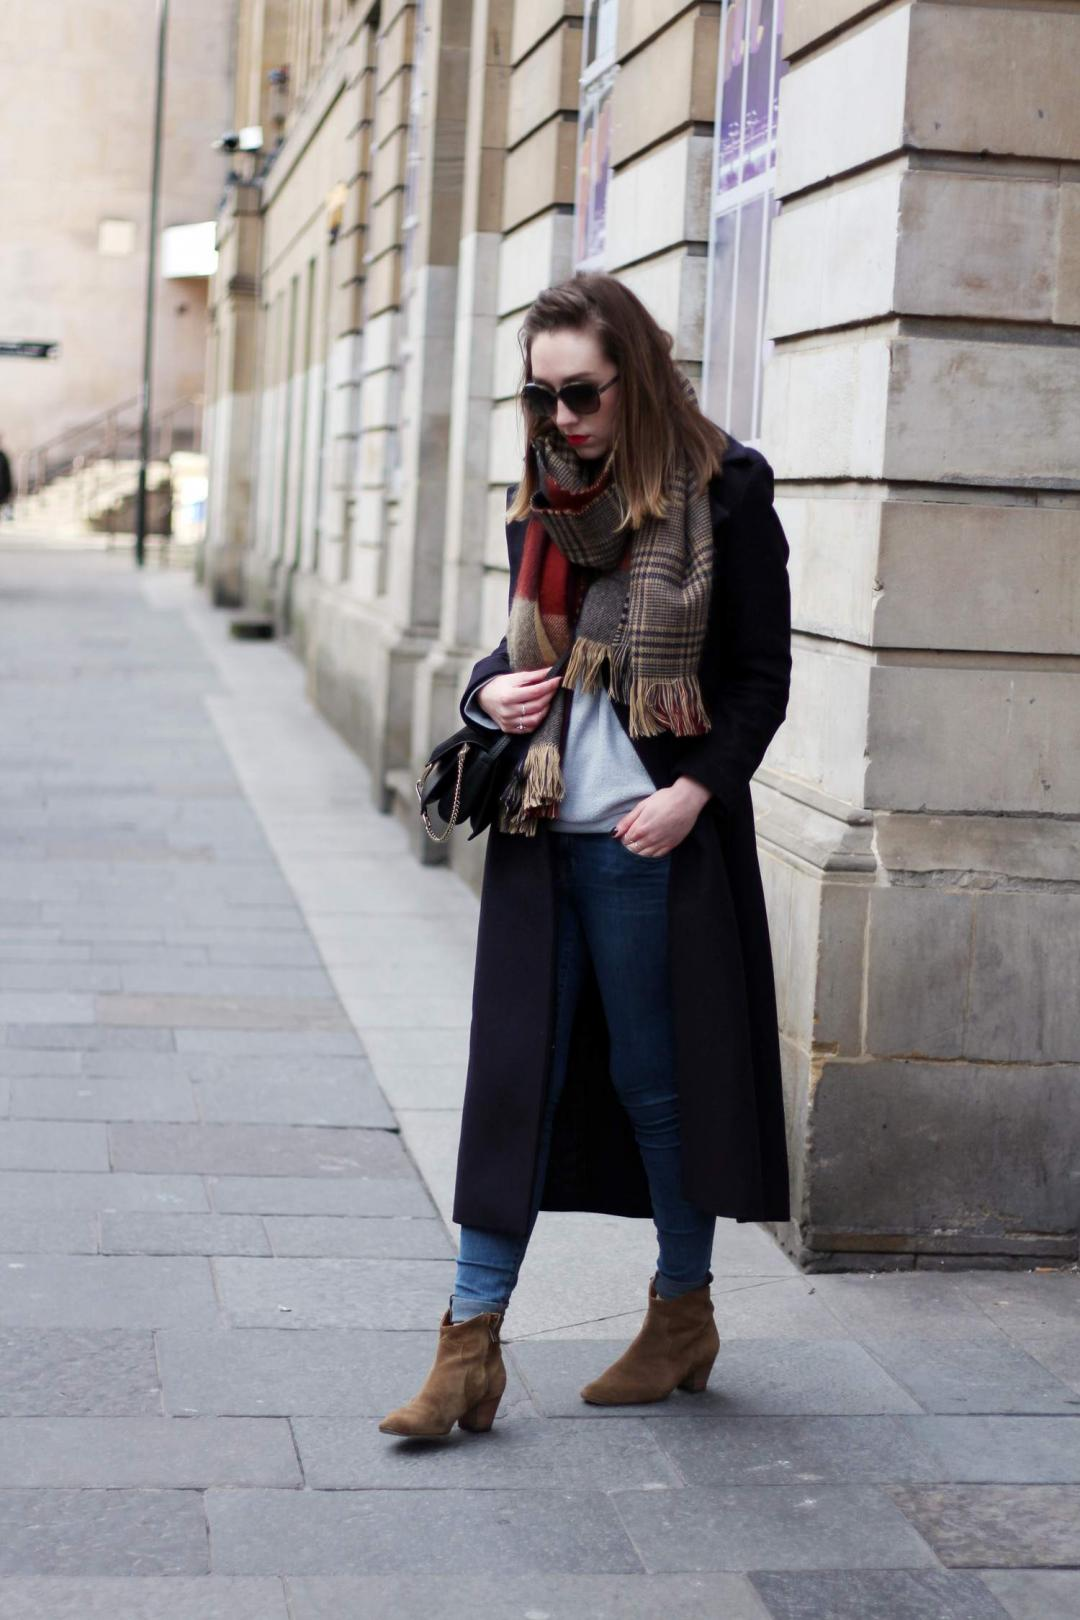 zara-jacket-checked-scarf-winter-outfit-j-brand-jeans